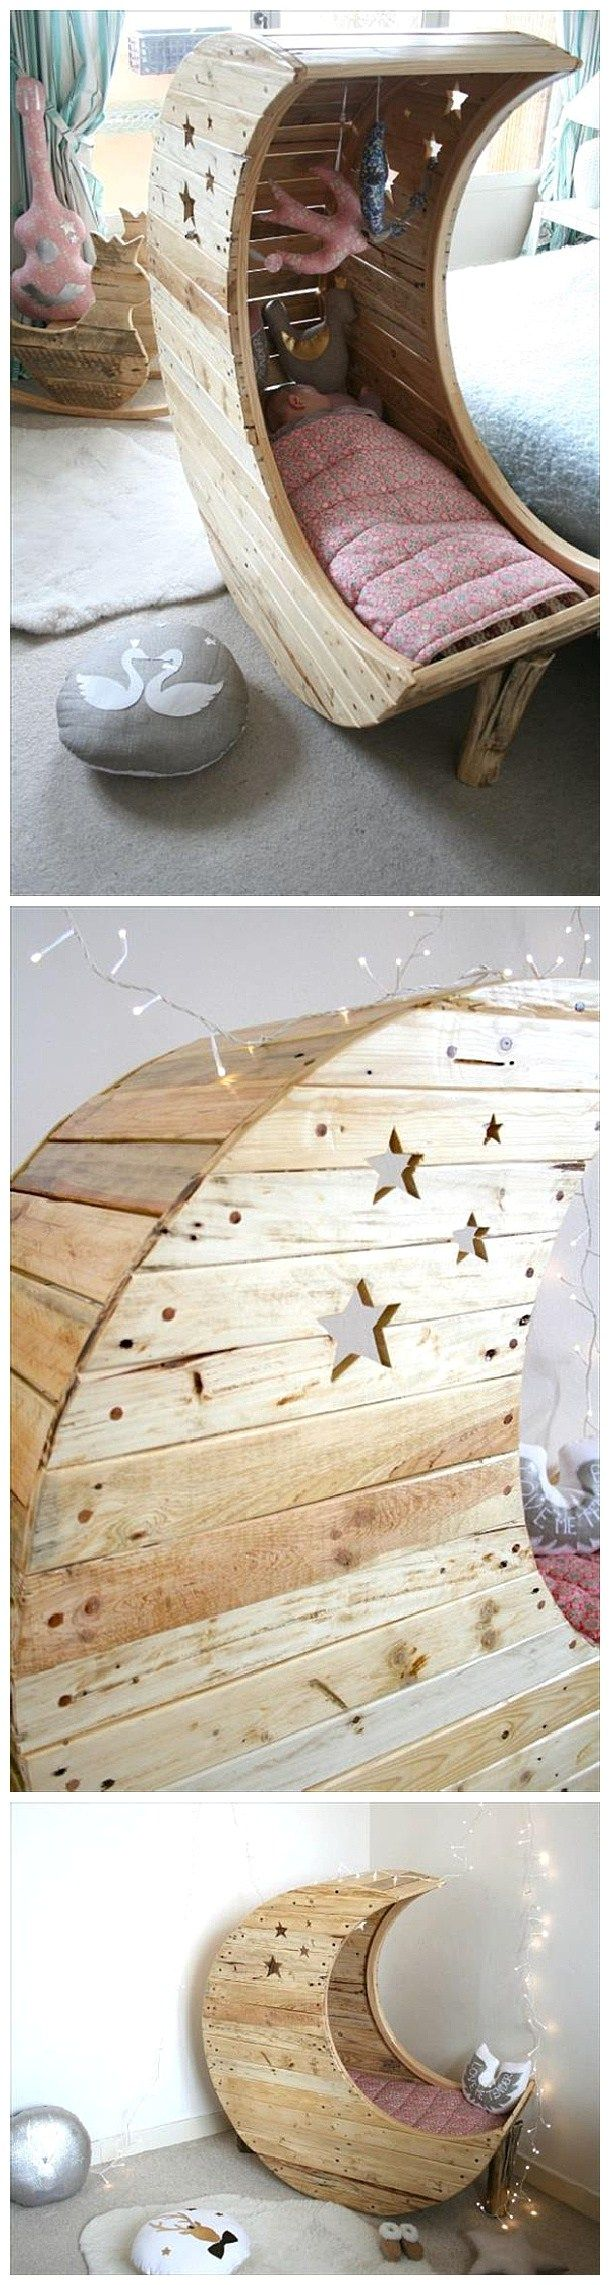 Do it yourself pallet projects diy pallet moon shaped baby cradle do it yourself pallet projects diy pallet moon shaped baby cradle woodworking tutorial via 99 pallets solutioingenieria Image collections